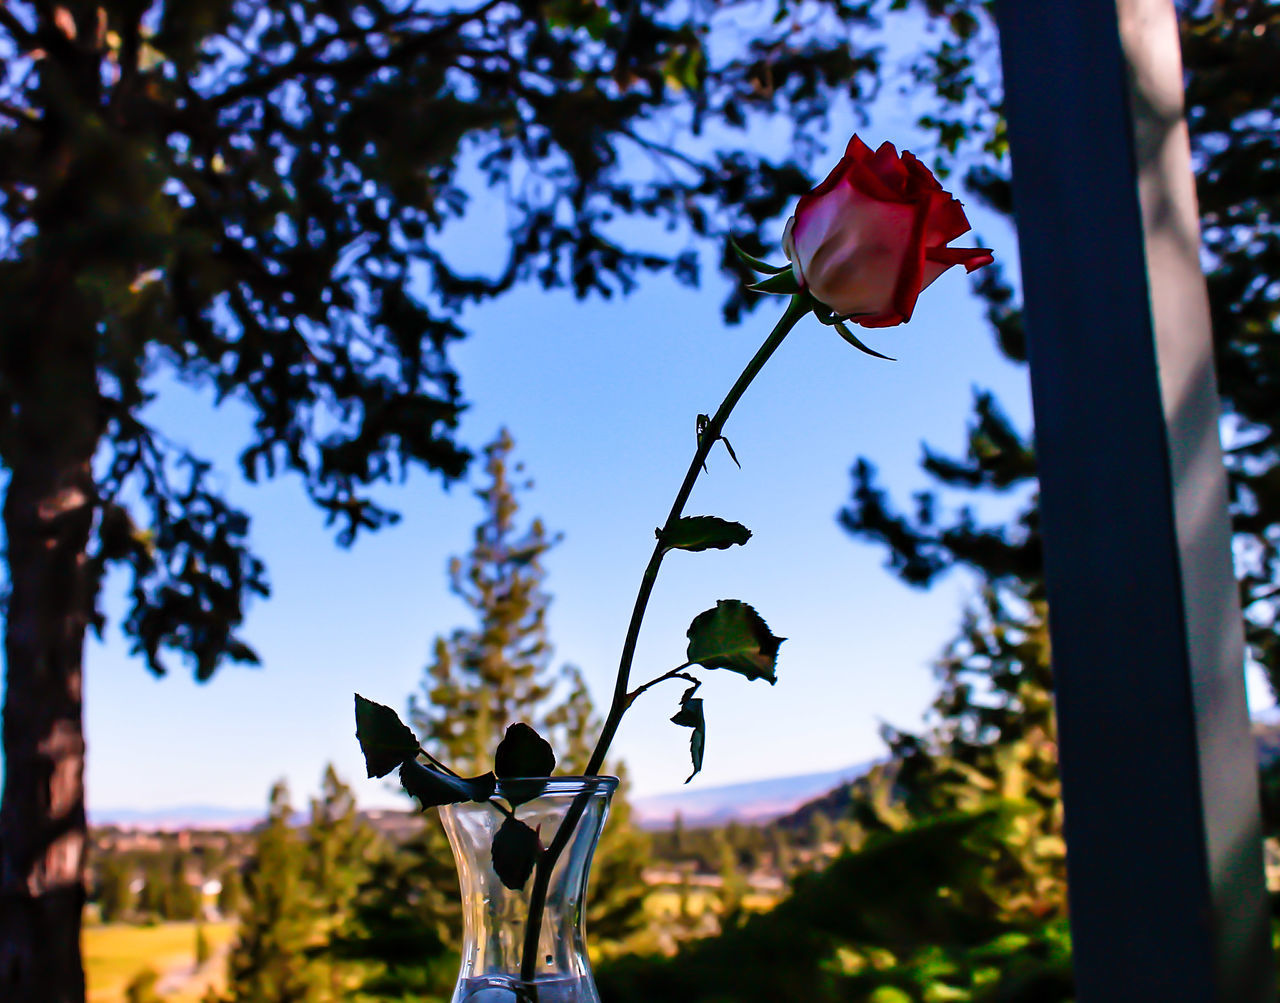 Diamond Mafia Photography Garden Photography Lake Shastina Gardens Mount Shasta, California Nature Photography Landscape Mountains Clouds And Sky Lake Red Roses